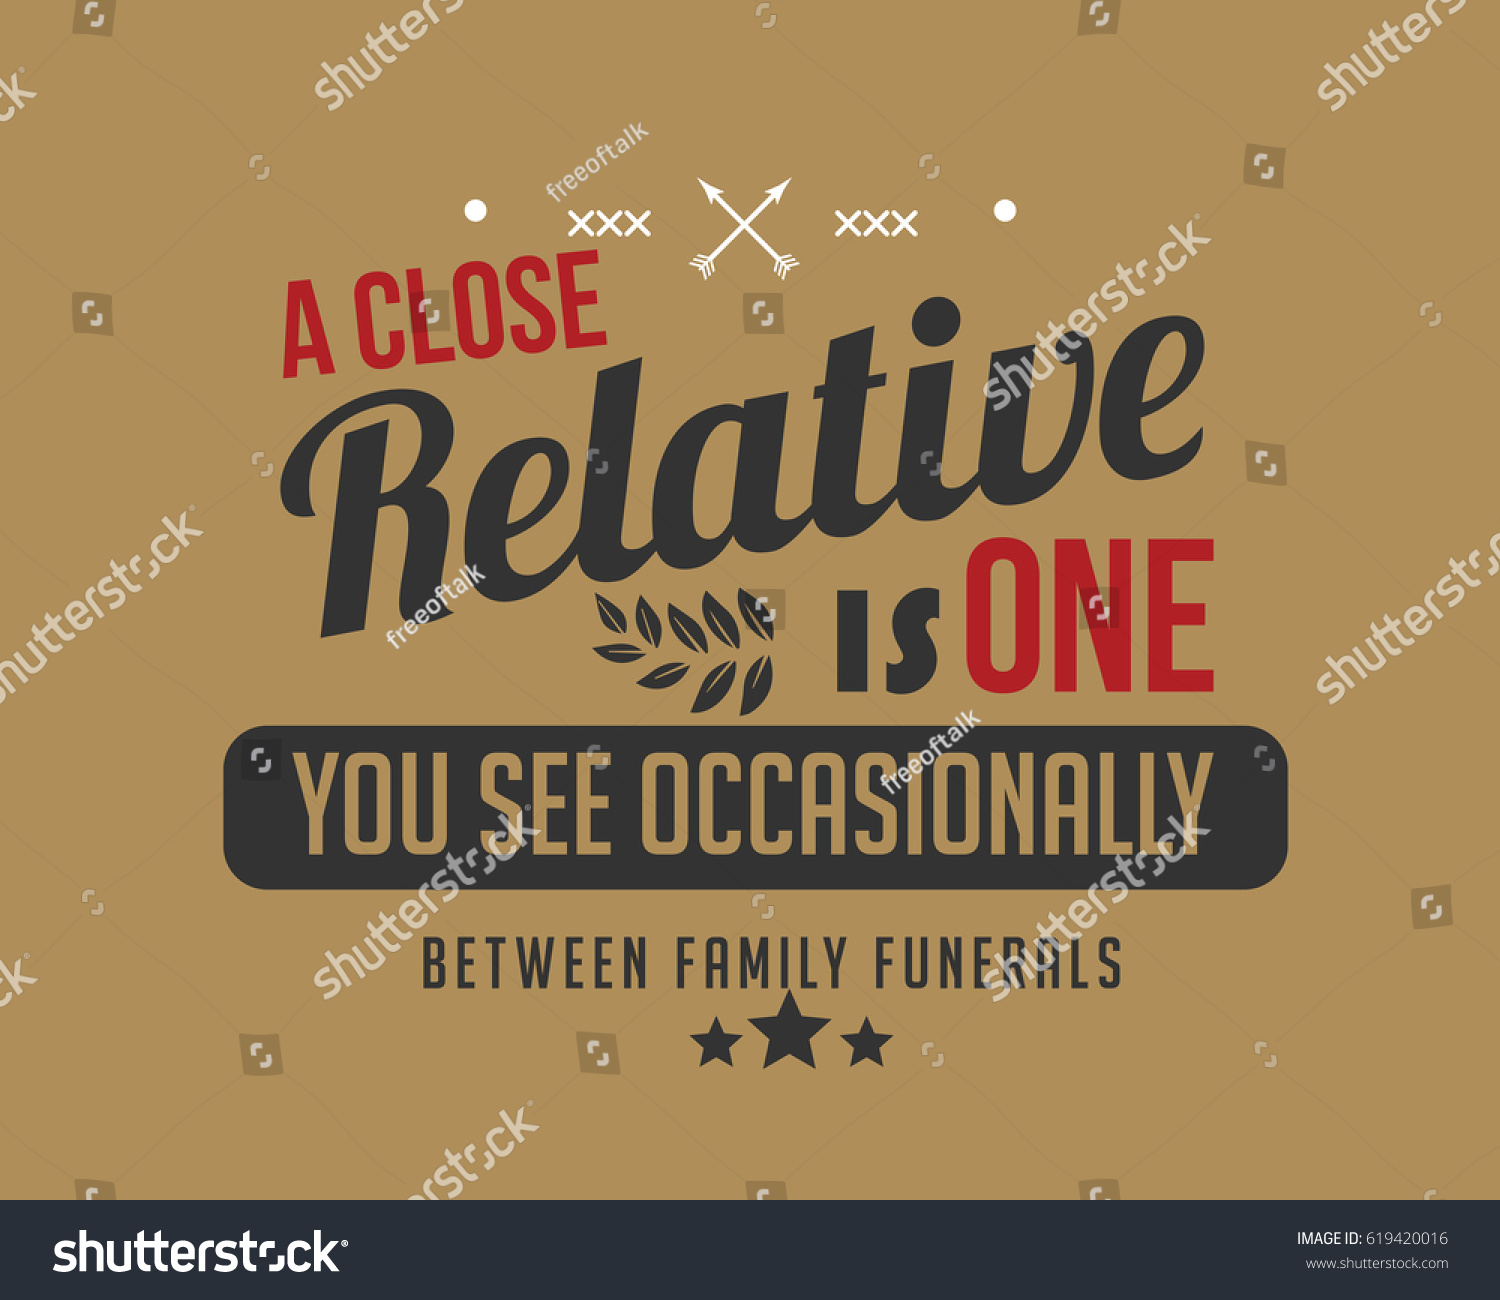 Quotes For Funerals Close Relative One You See Occasionally Stock Vector 619420016